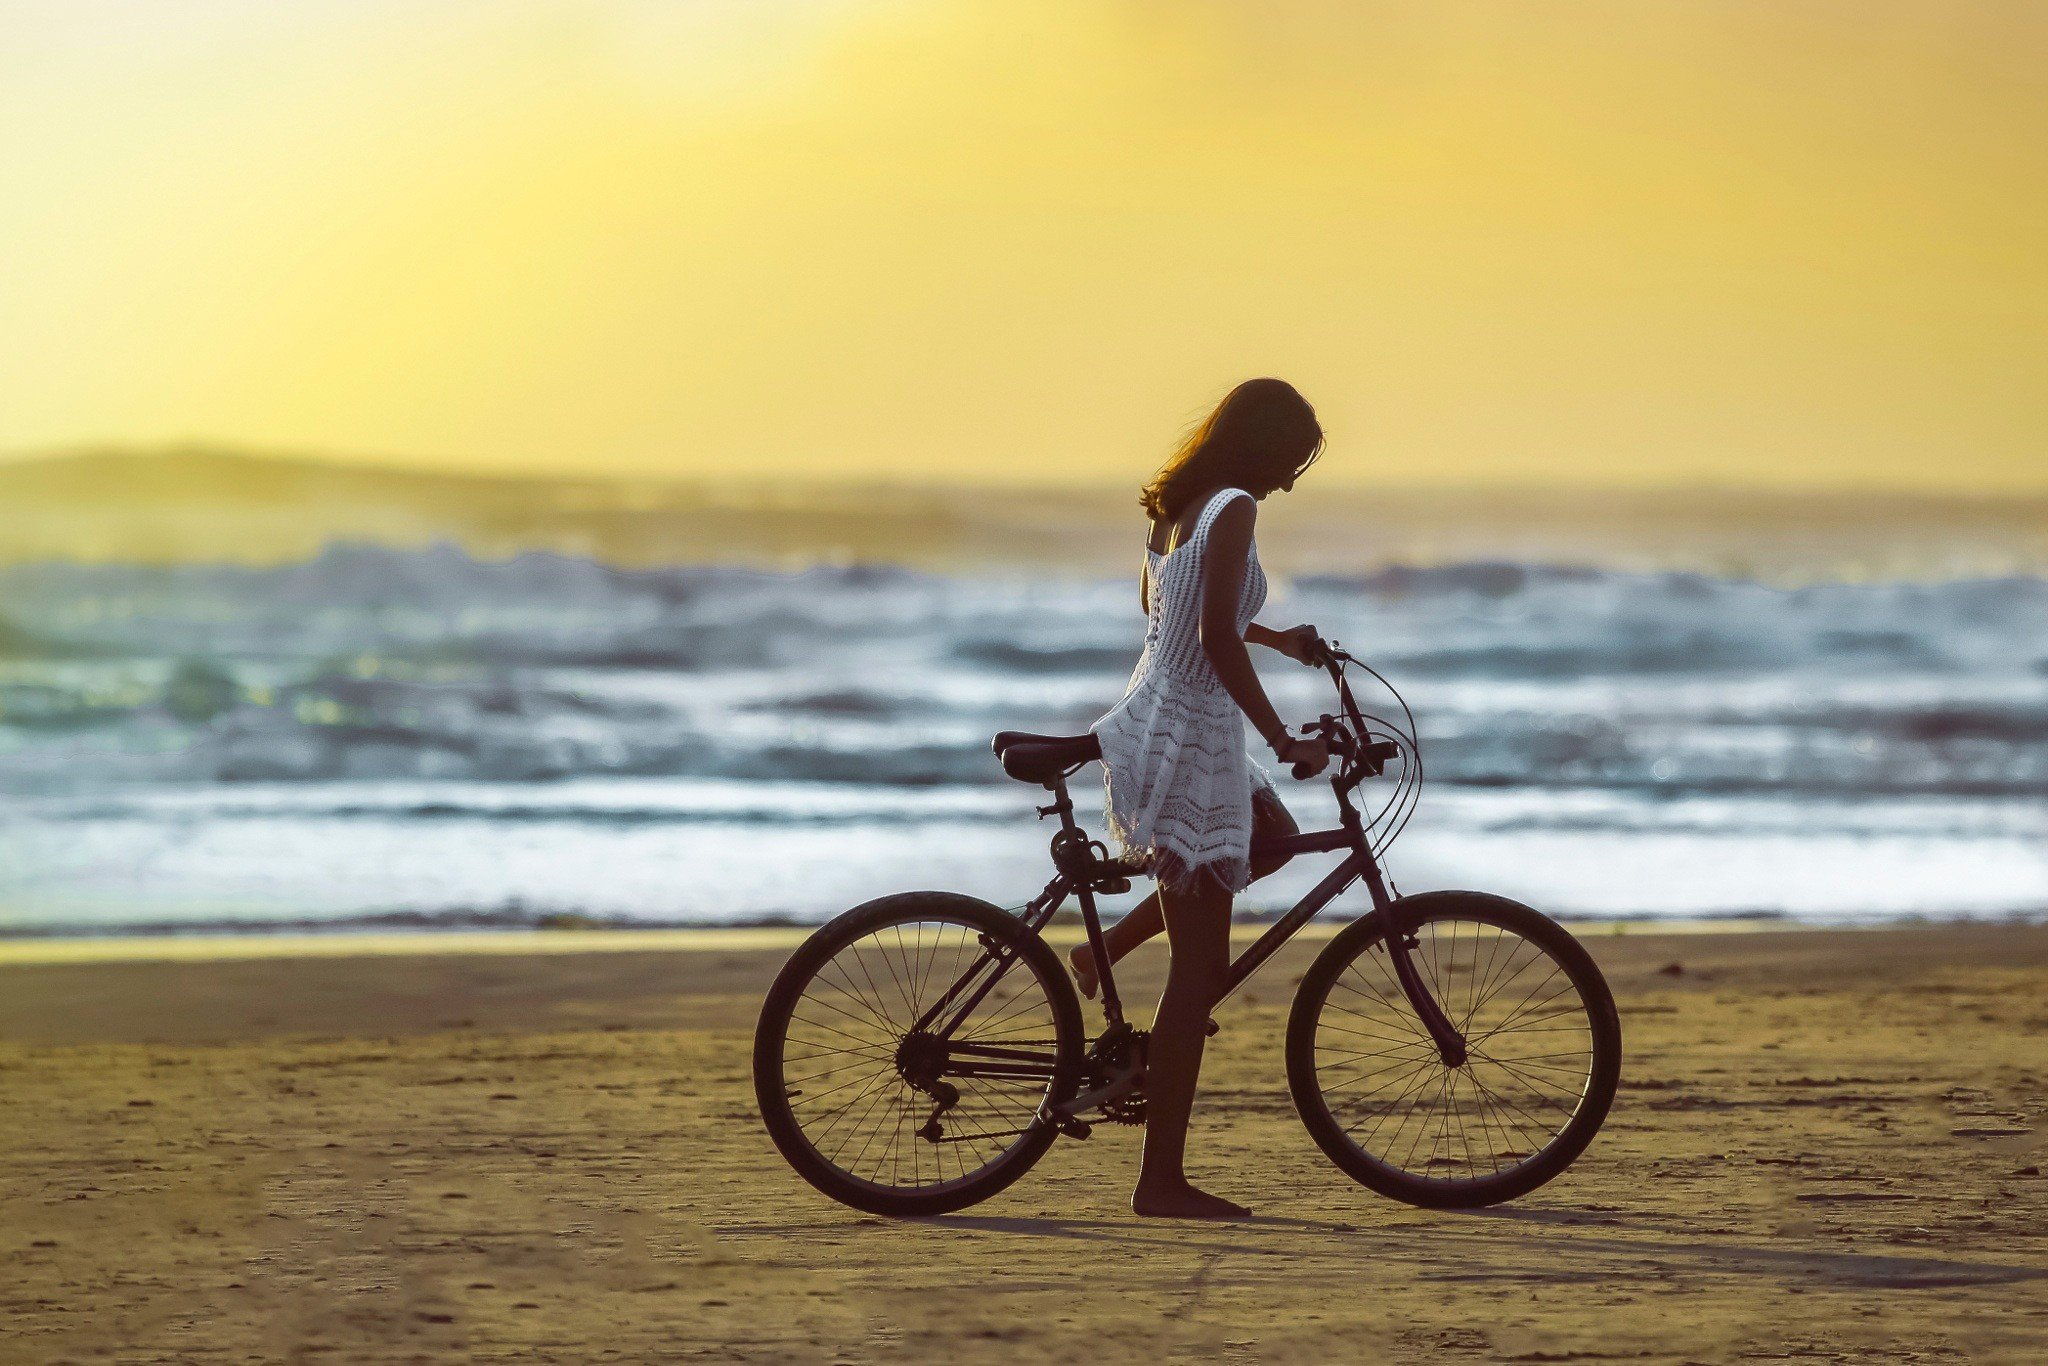 Women, Model, Beach, Sea, Bicycle Hd Wallpapers  Desktop -2995